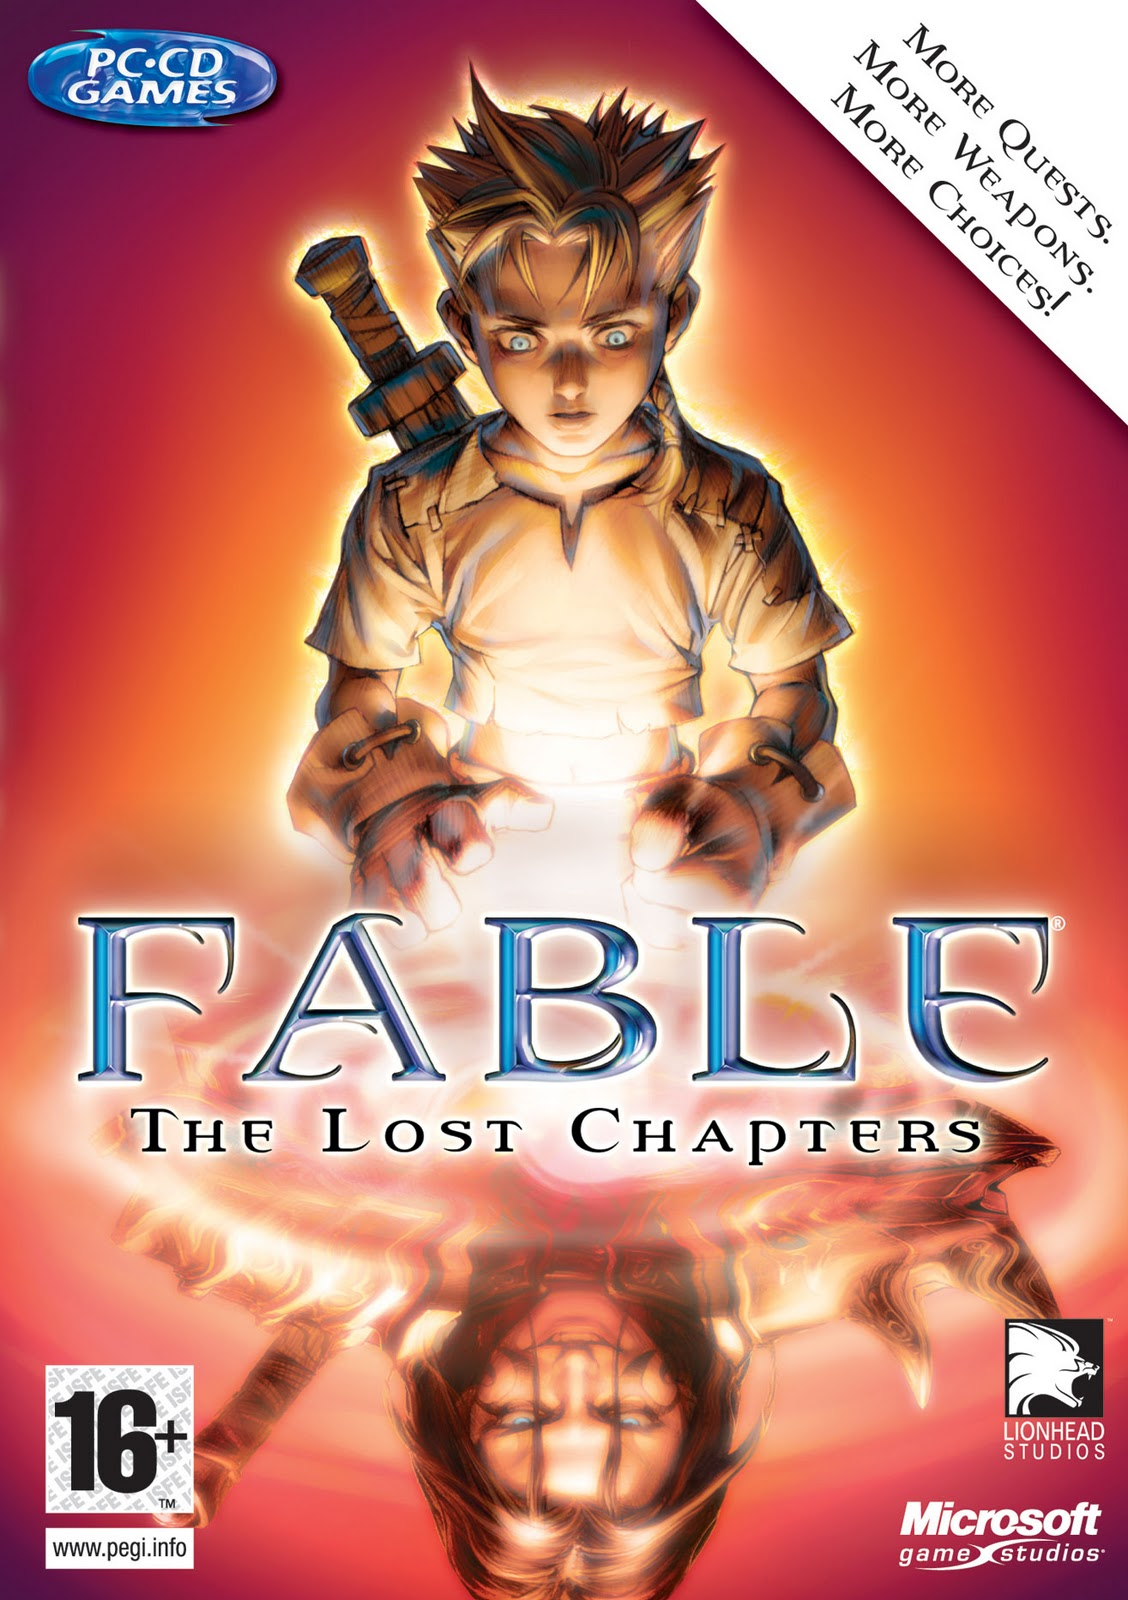 http://3.bp.blogspot.com/_6LCitH1ds2M/TUcy8i81AHI/AAAAAAAABjo/5ZlPdu7v8OQ/s1600/Fable_The_Lost_Chapters_Cover.jpg